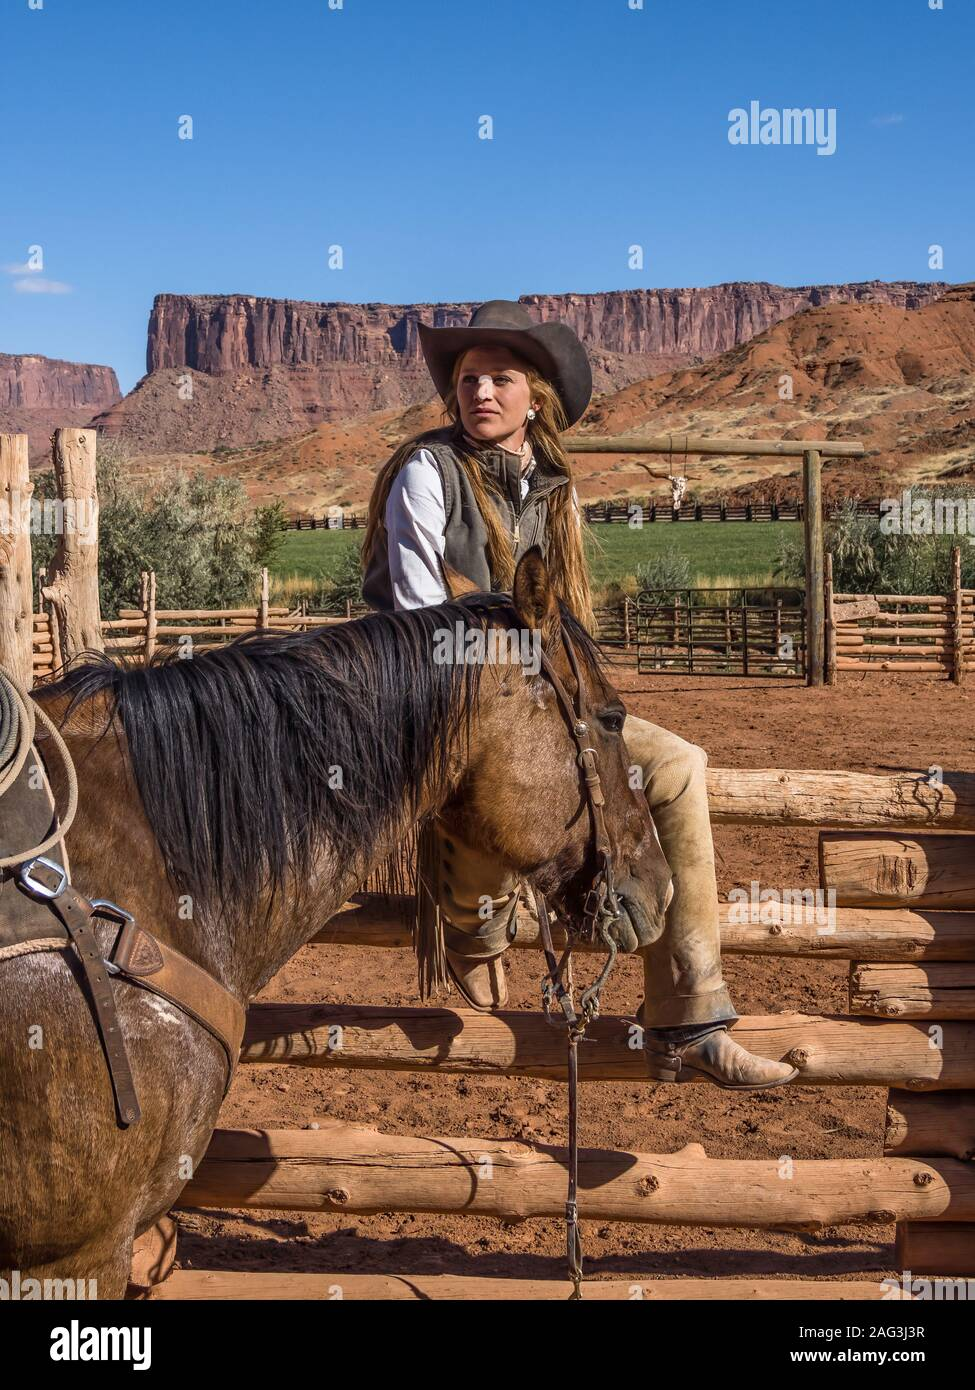 A young attractive working cowgirl wrangler sits on a wood rail fence by her horse on a ranch near Moab, Utah. Stock Photo